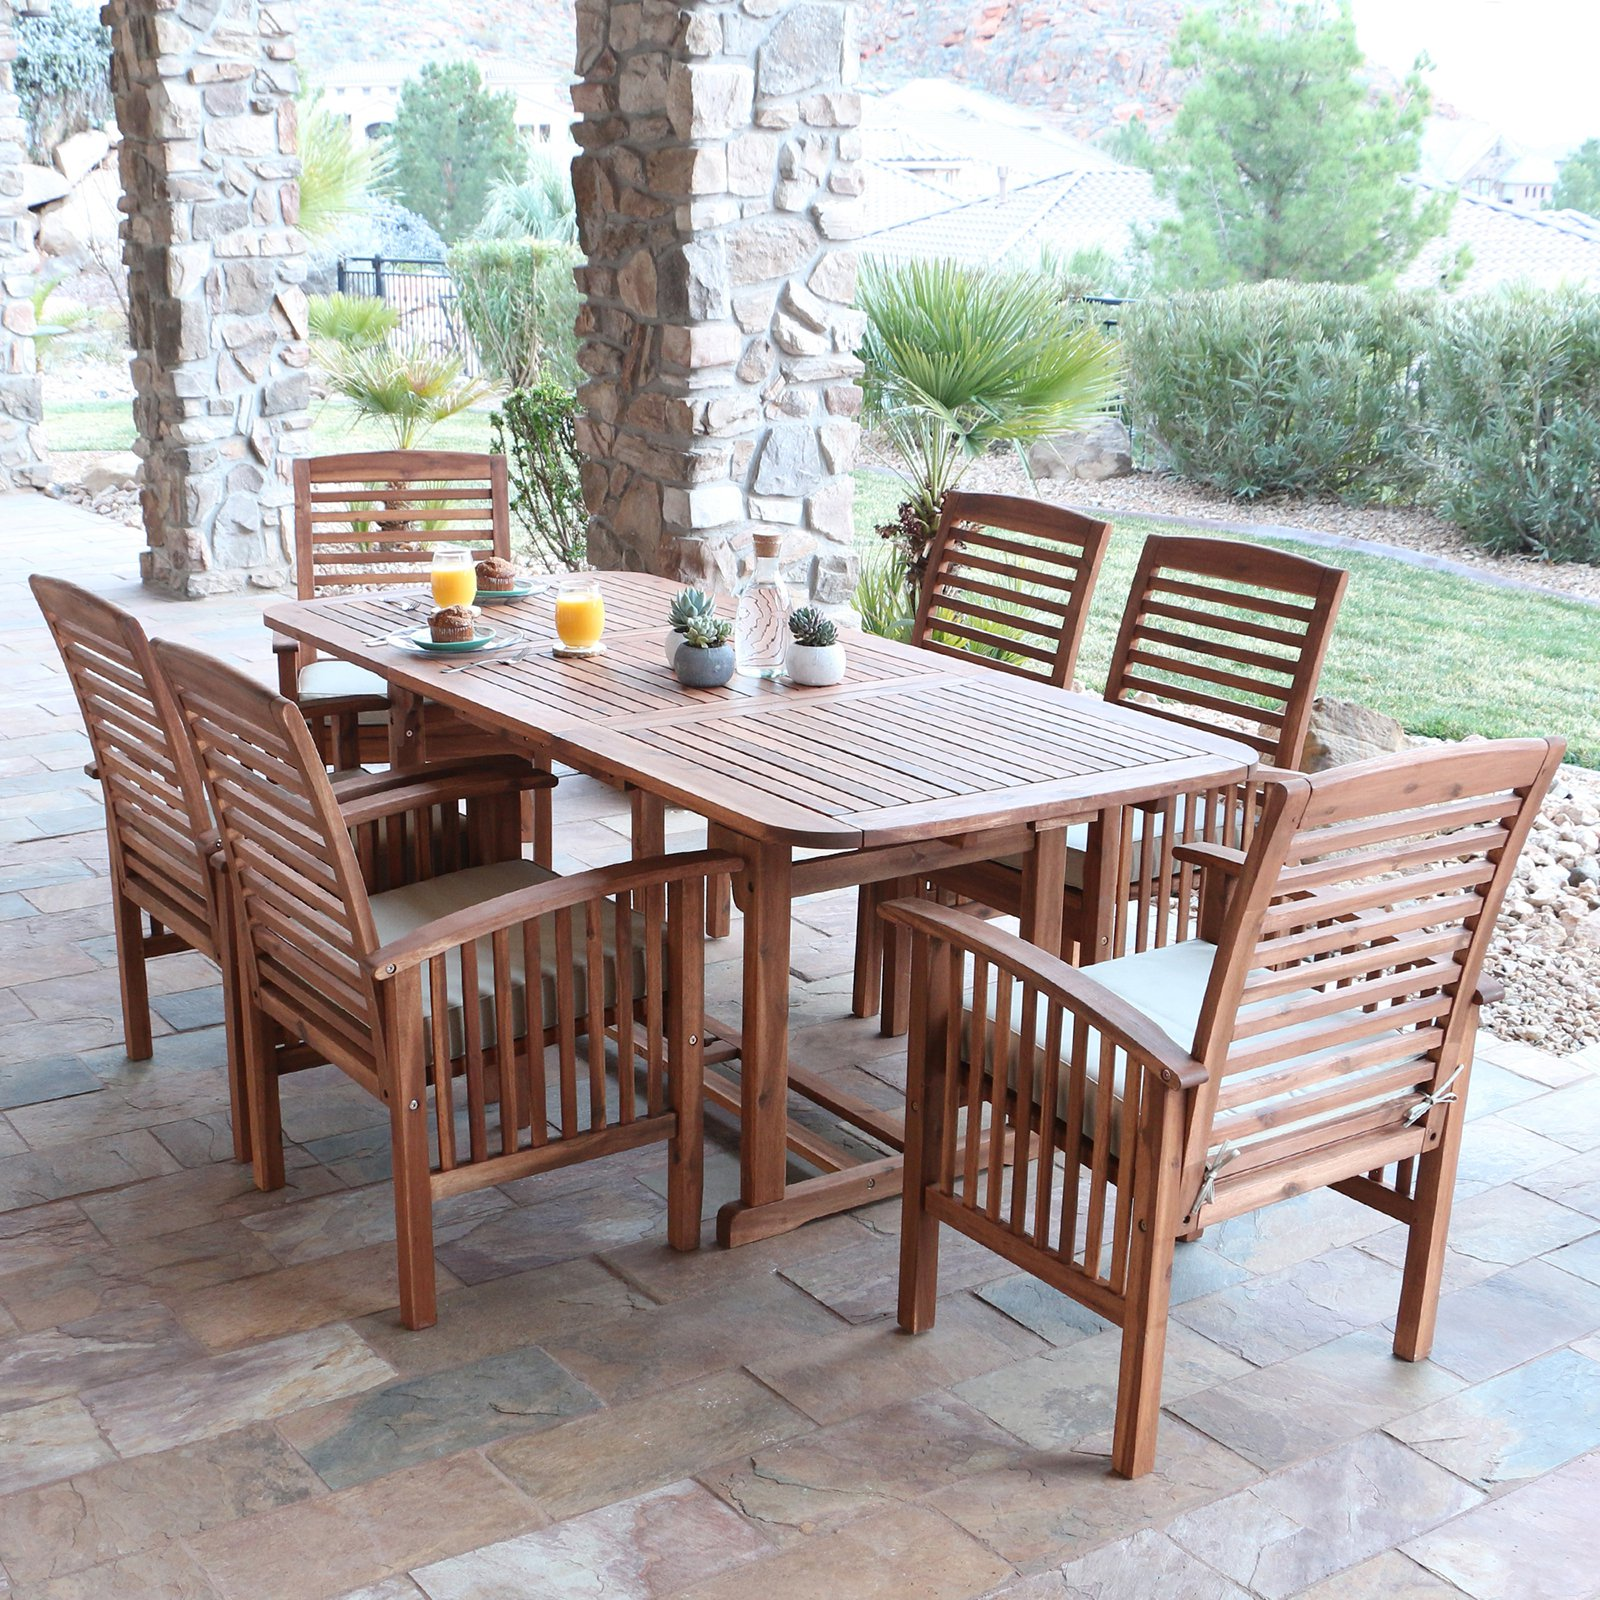 dining solid piece outdoor dp we amazon com patio furniture wood acacia garden set